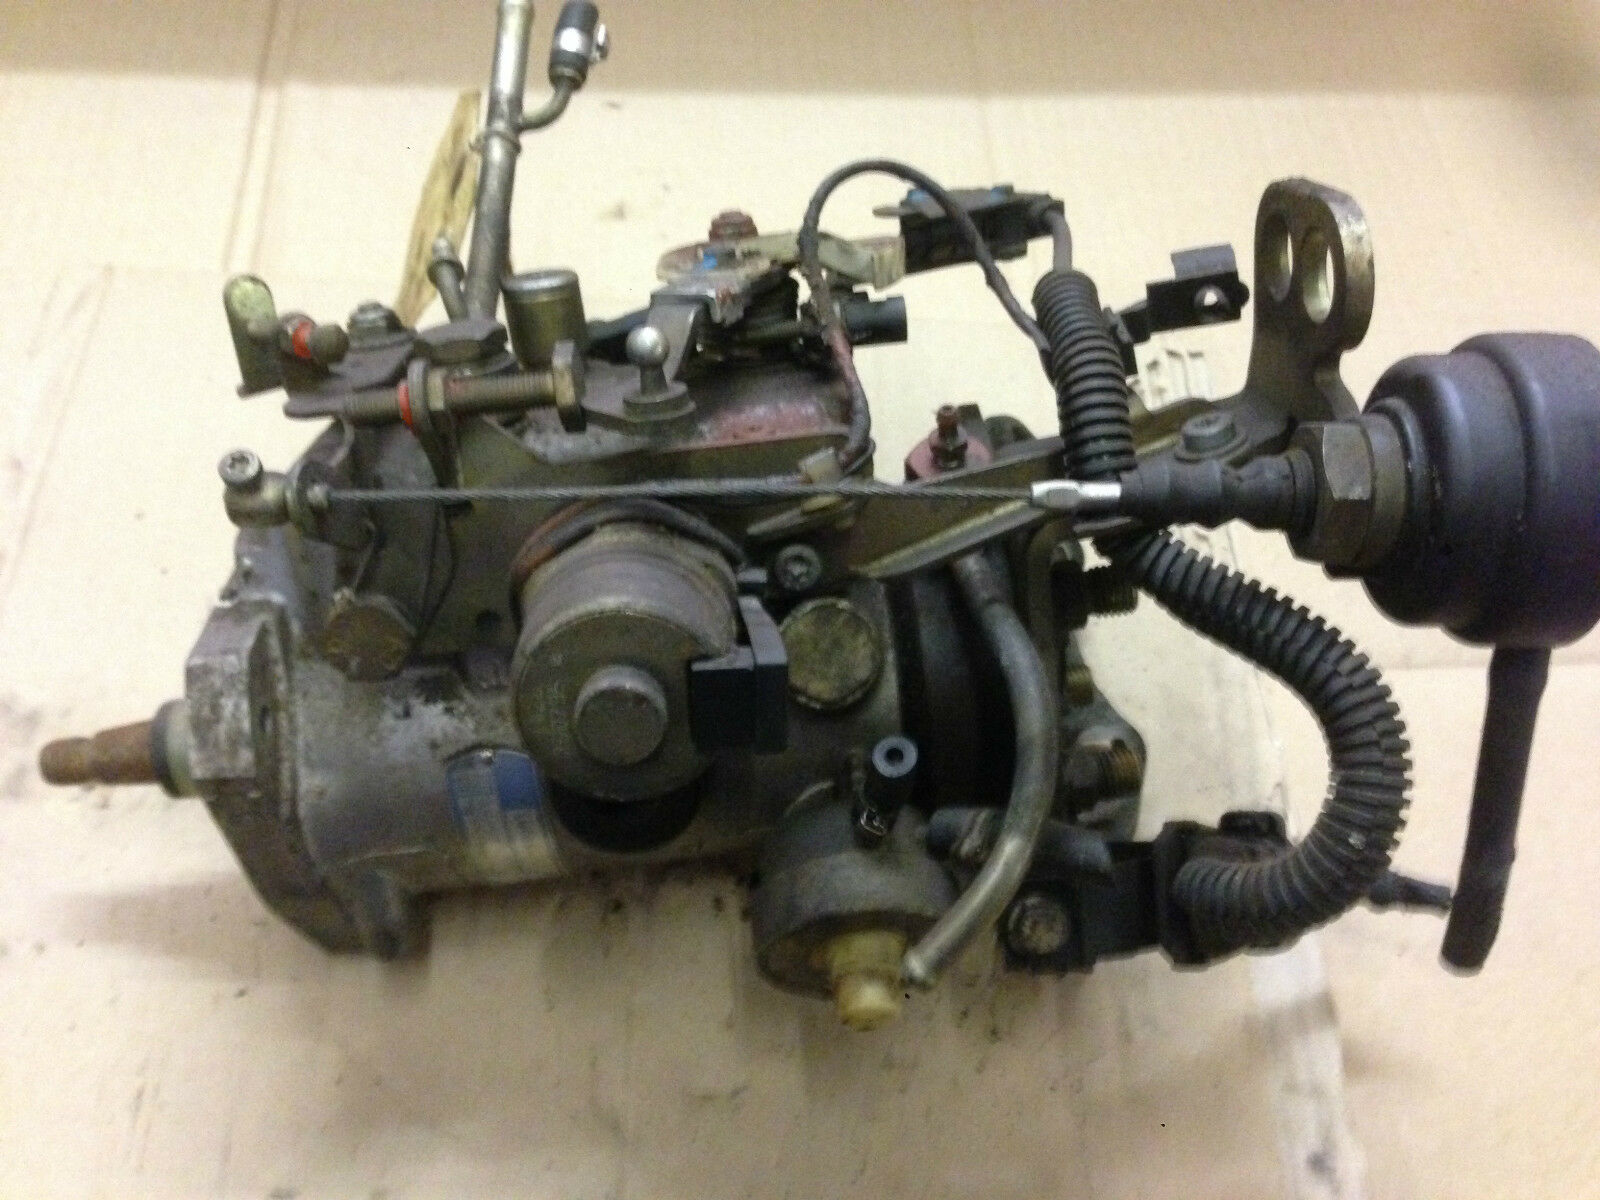 Volvo 440 19 Td 1997 Diesel Fuel Pump Lucas F8qlto1 R8444b850a 960 Filter Location 1 Of 8only Available